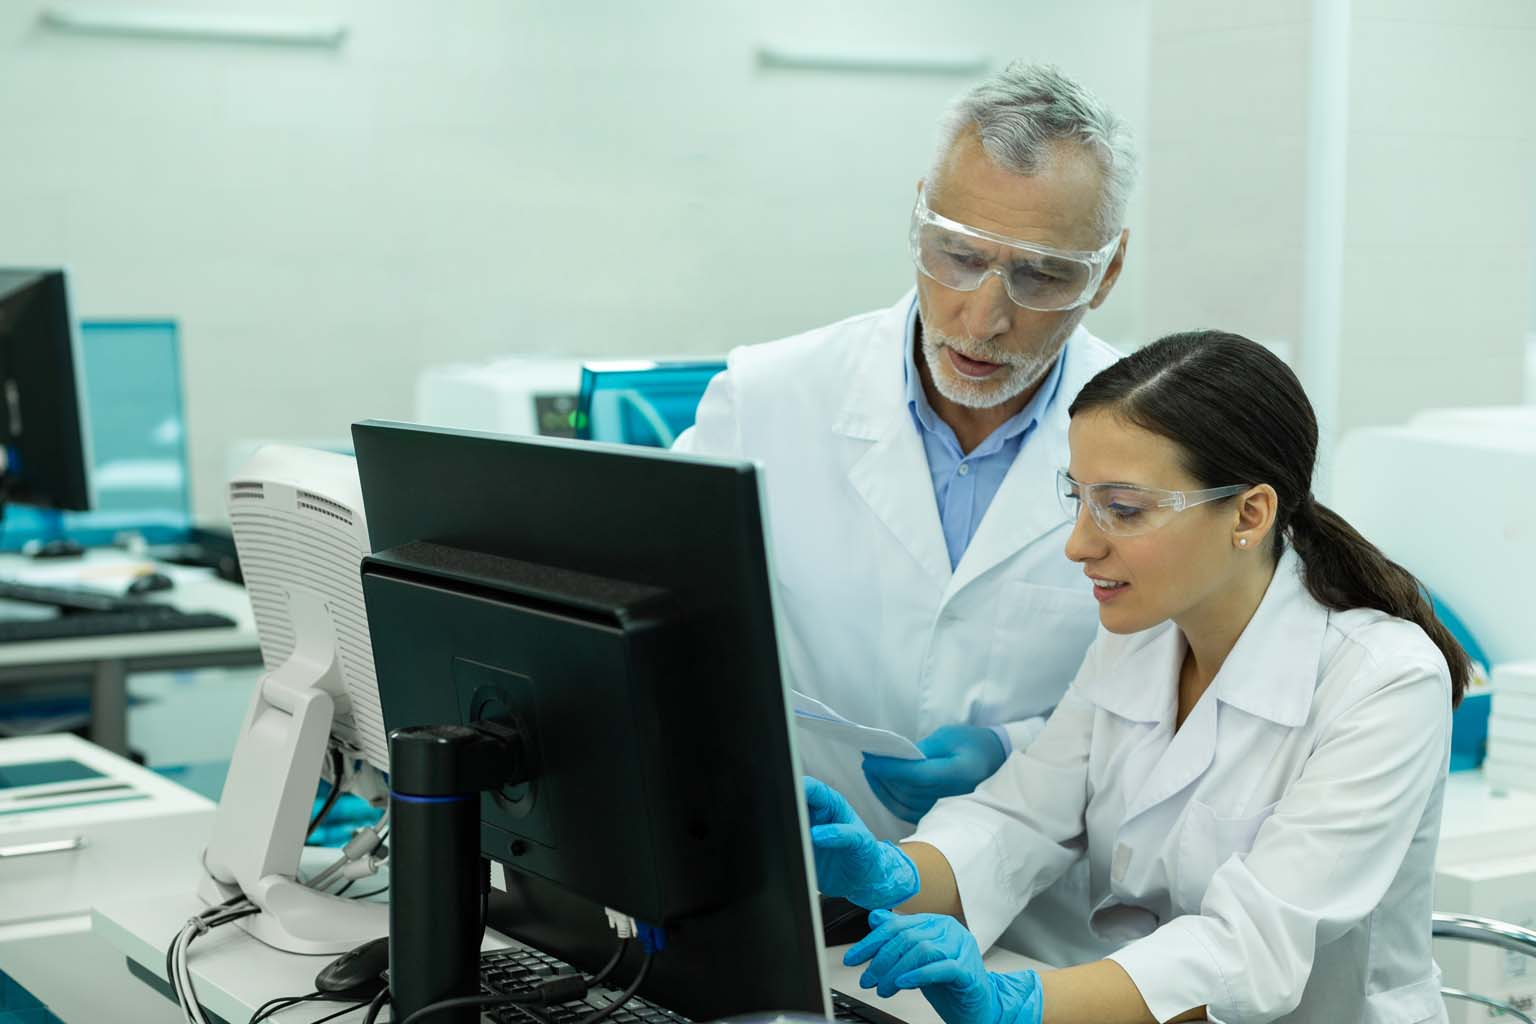 pharmacists in lab using computer